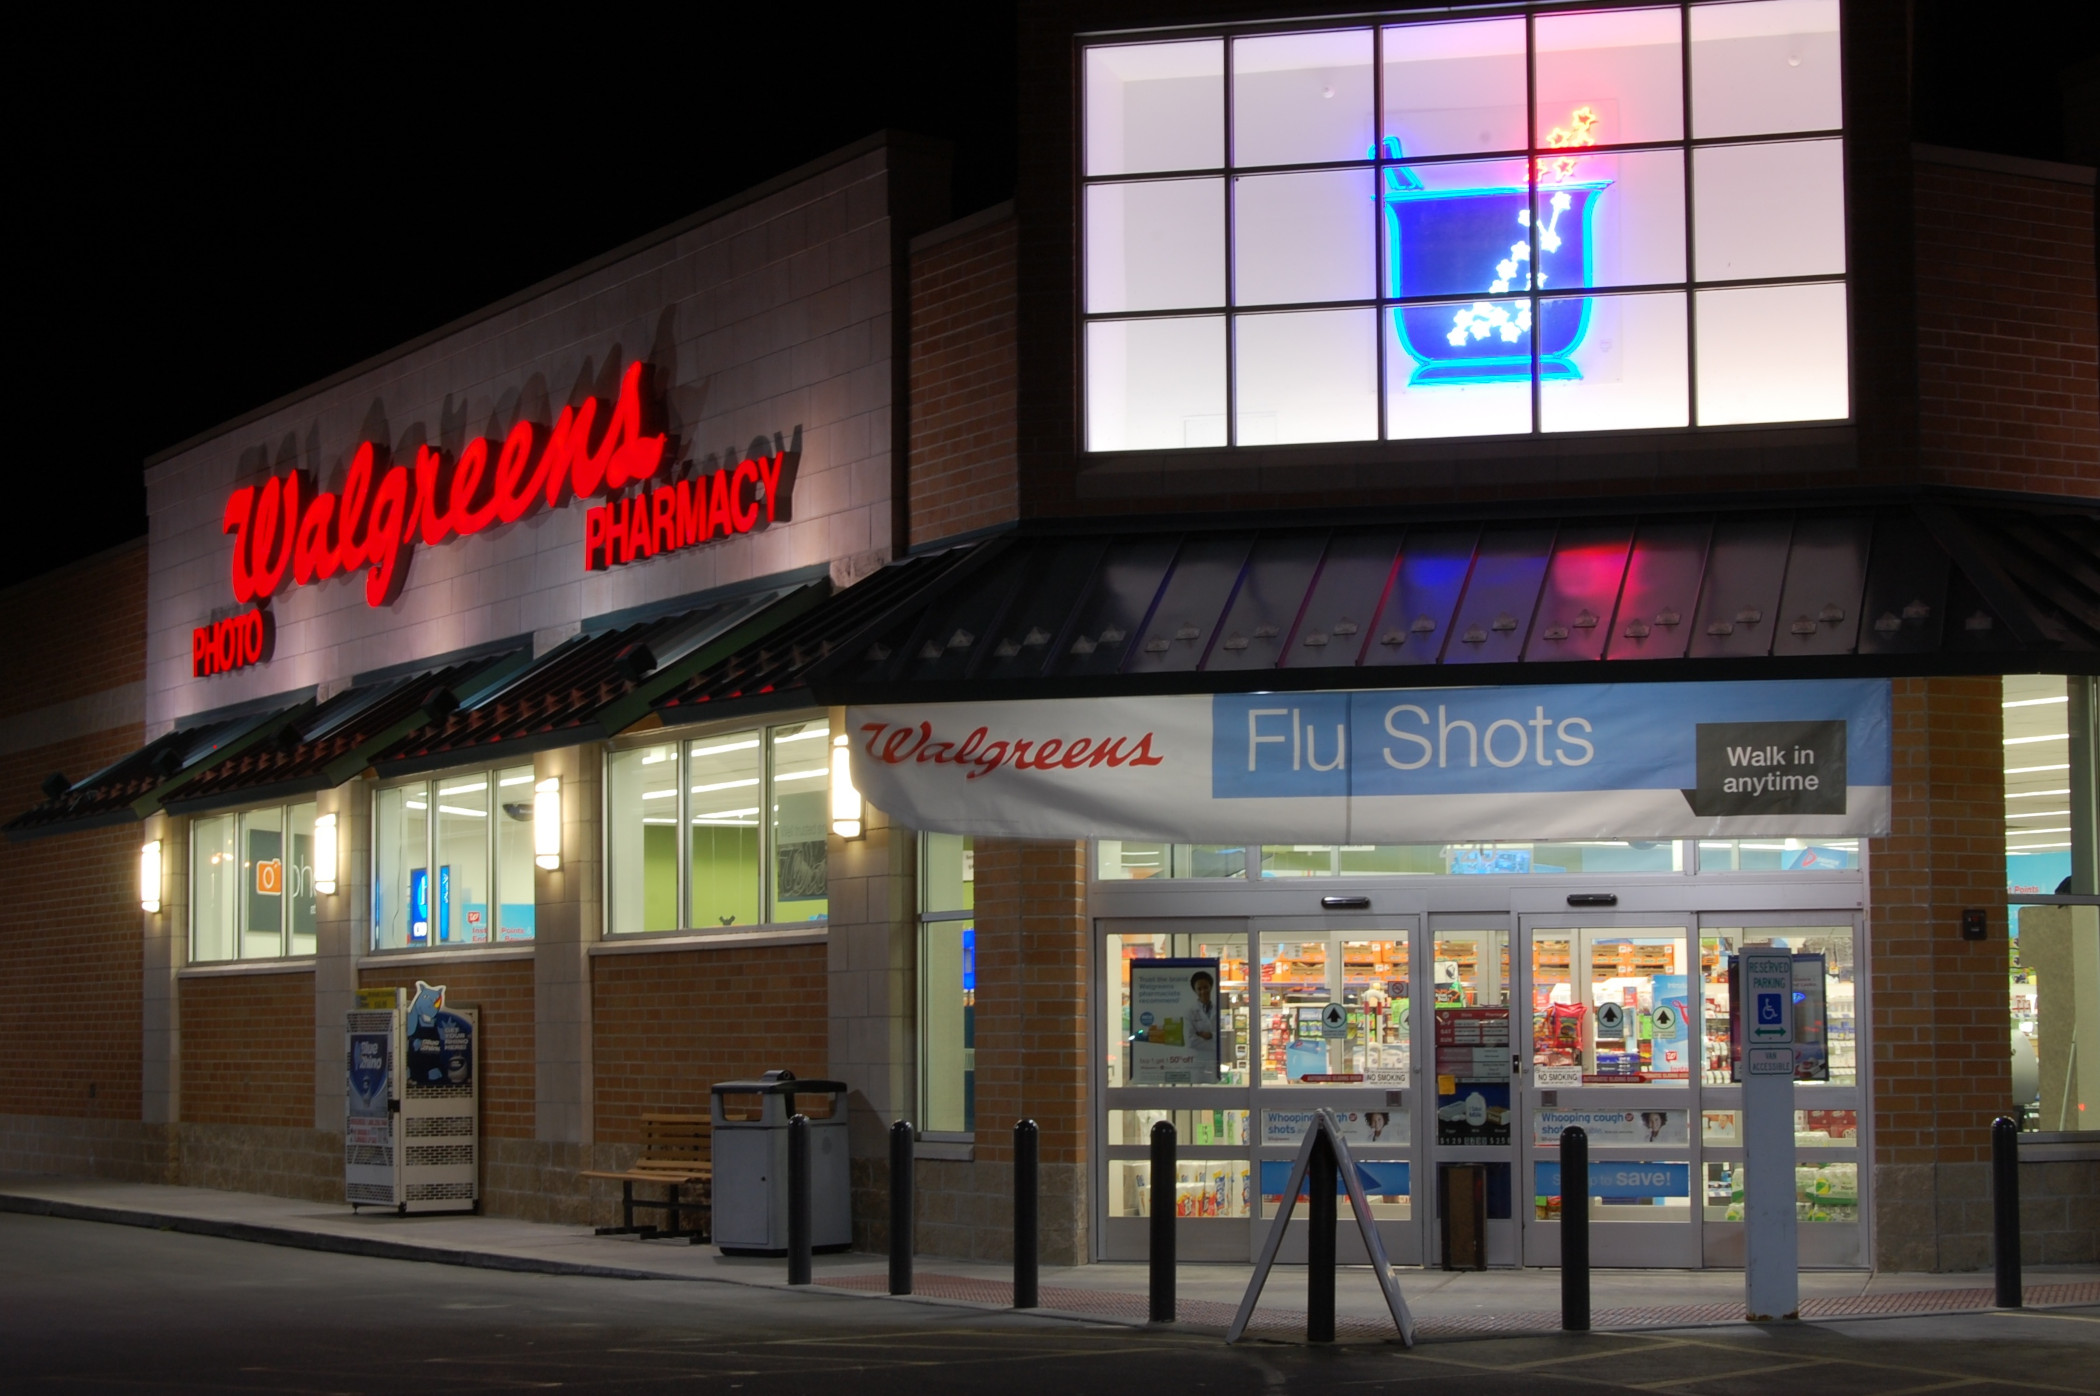 Walgreens reported strong earnings from pharmacy sales in the quarter ended Nov. 30, just before U.S. jobs losses mounted in part because of the pandemic. (Getty)